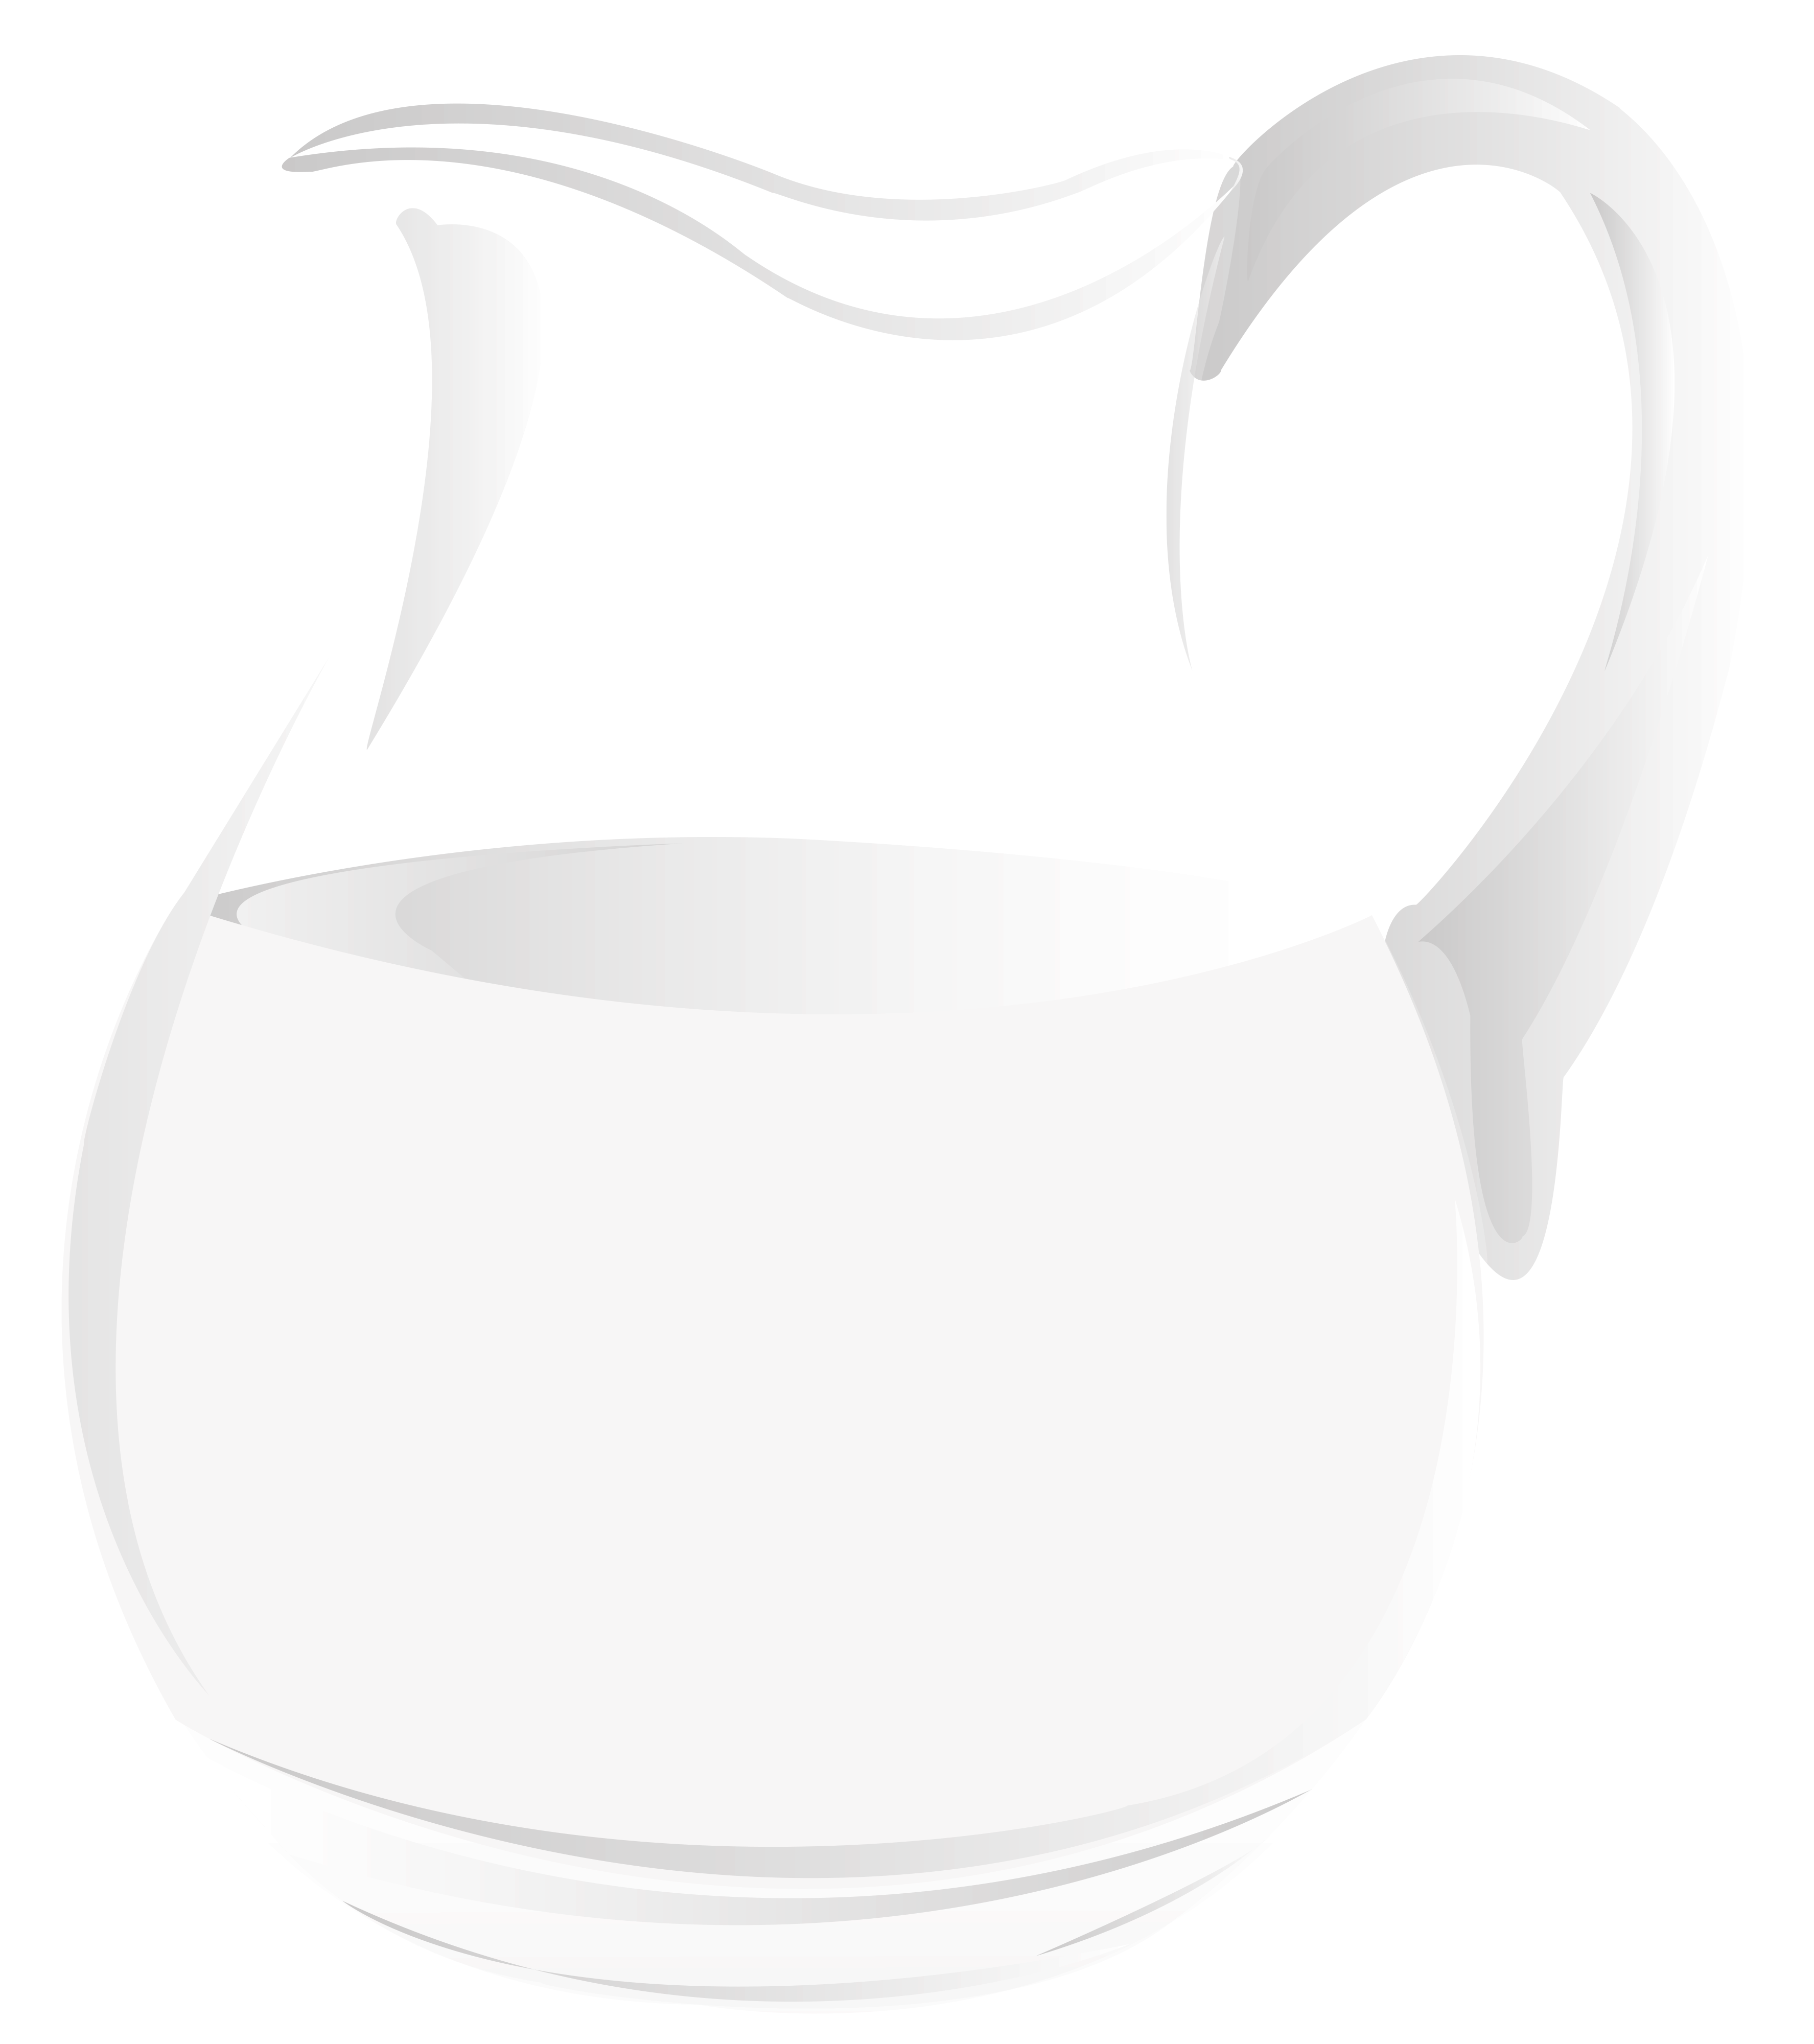 Milk clipart spilling. Jug of png gallery